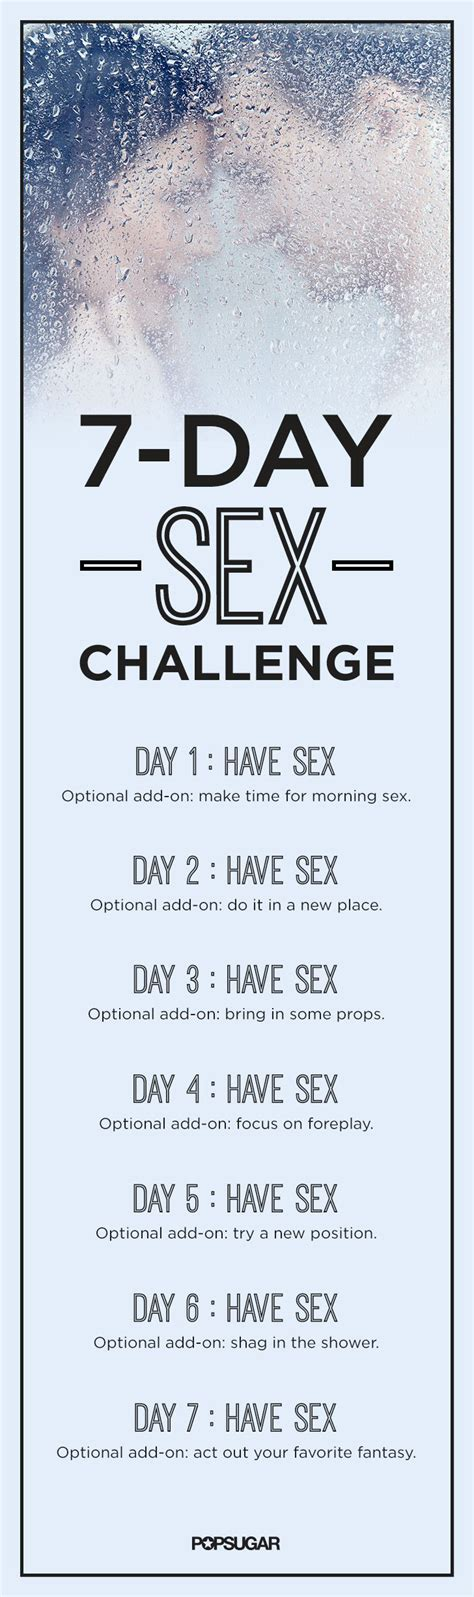 How Many Search On Each Day 7 Days Of You Can Do It Each Day And